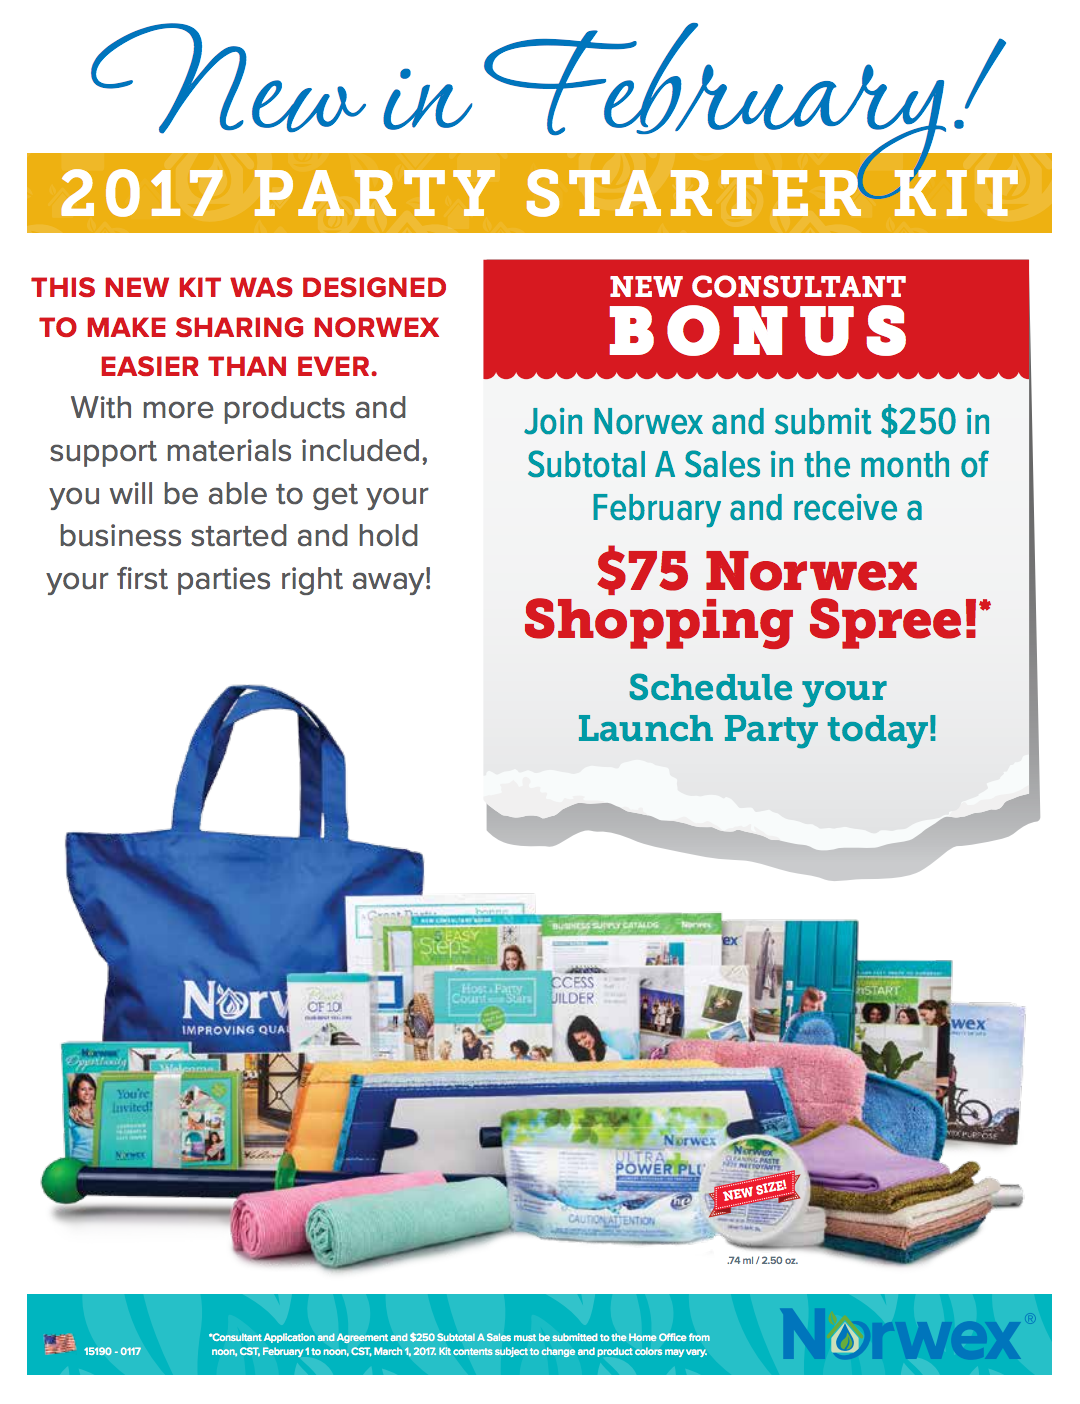 Join Norwex, Become a Consultant in February *Bonus Shopping Spree!